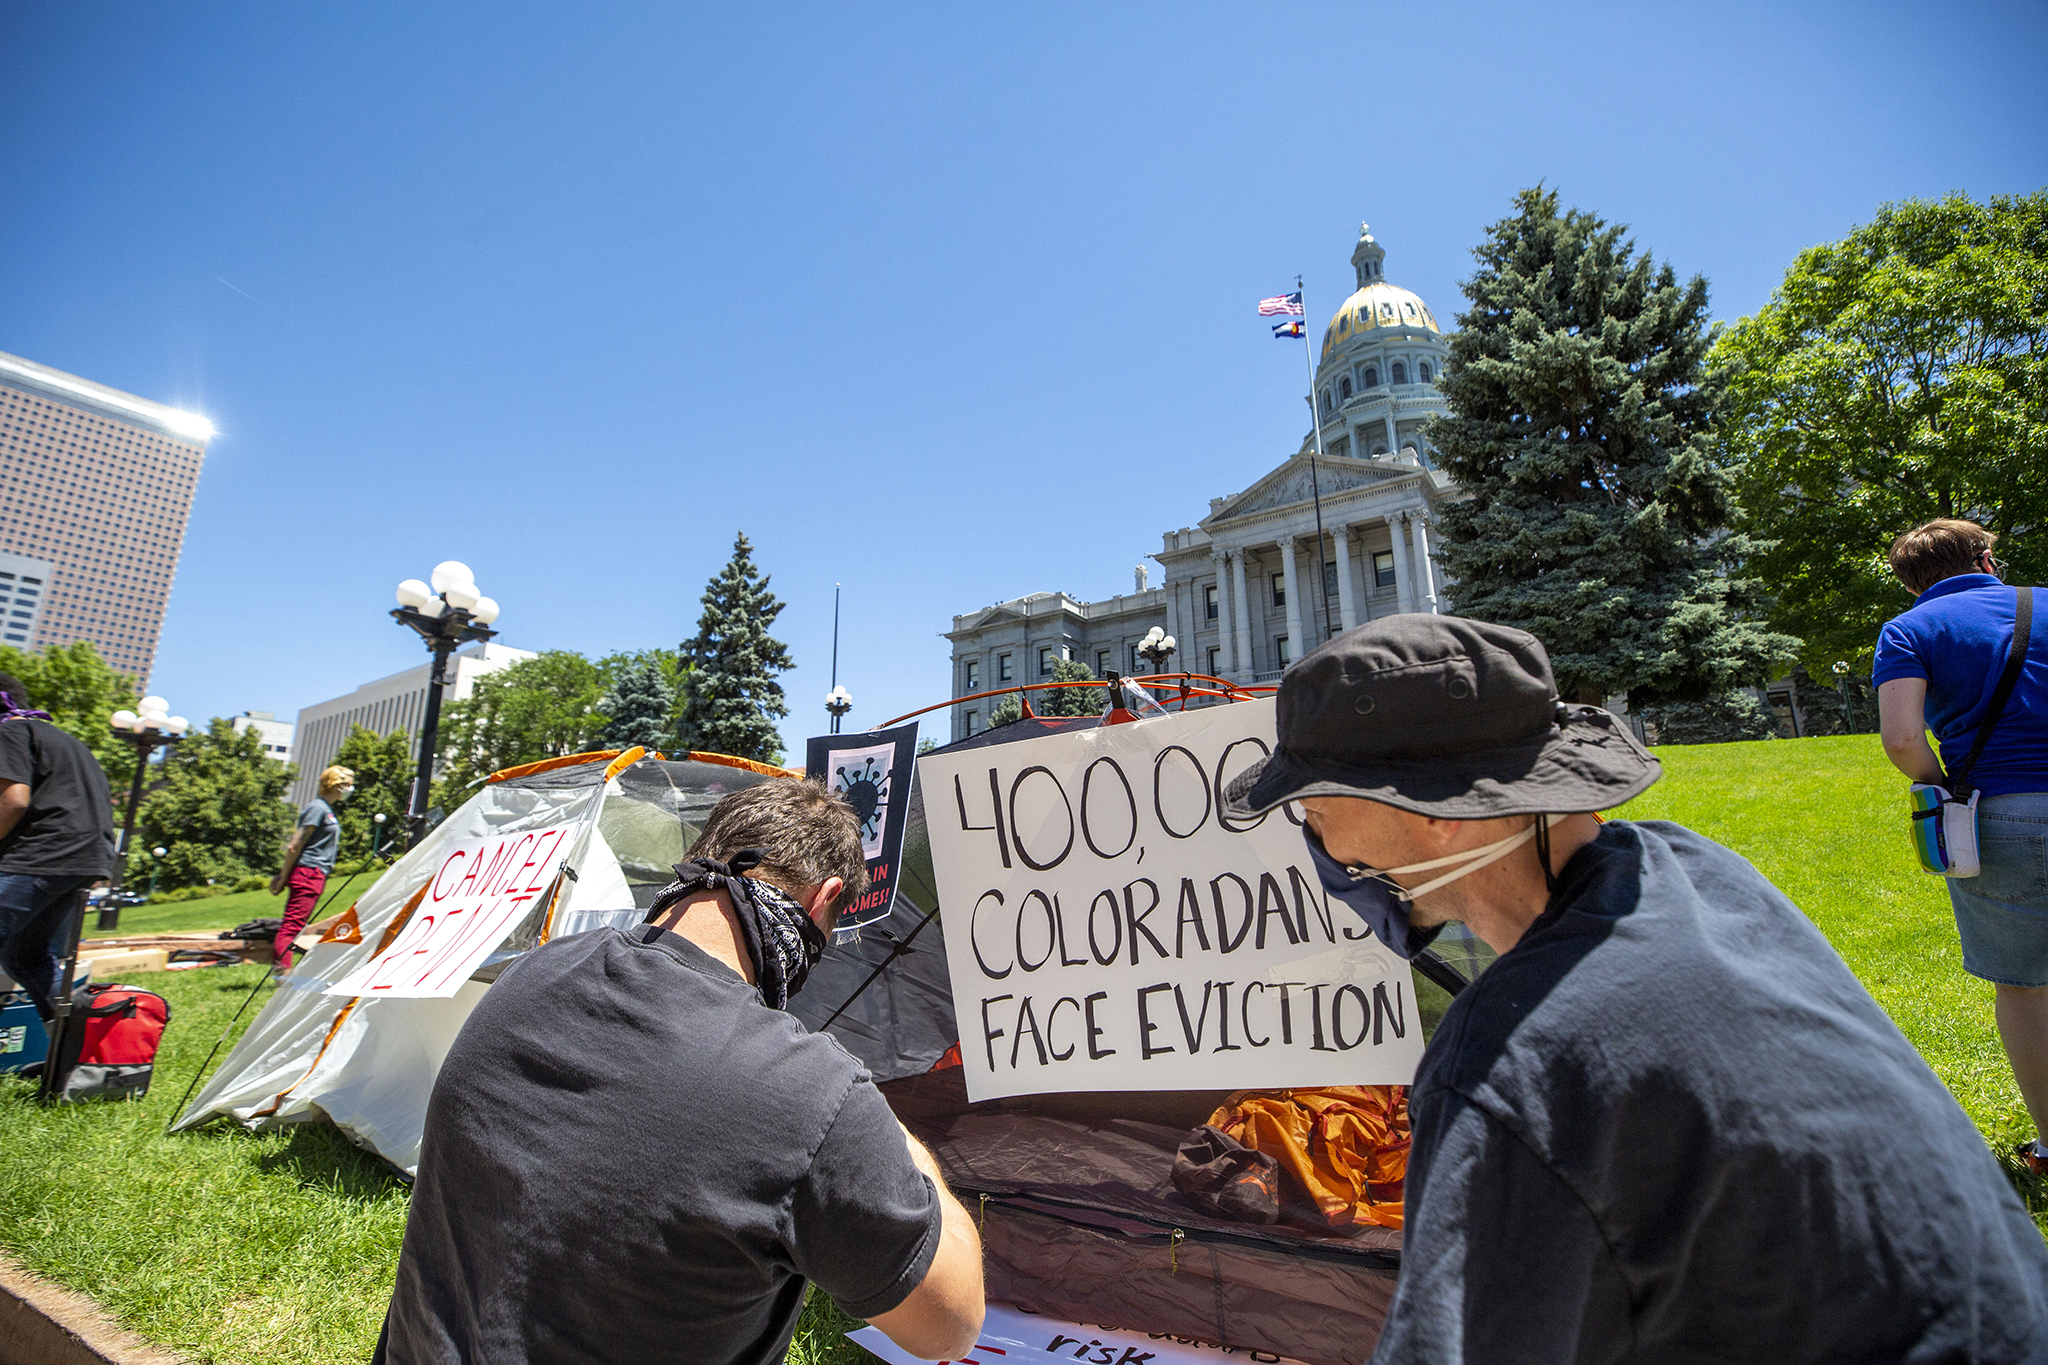 Kevin Breidenbach and Luke Wierman post signs to tents as the Denver Democratic Socialists of America protest rent and evictions as the economy continues to struggle during the pandemic. July 1, 2020.